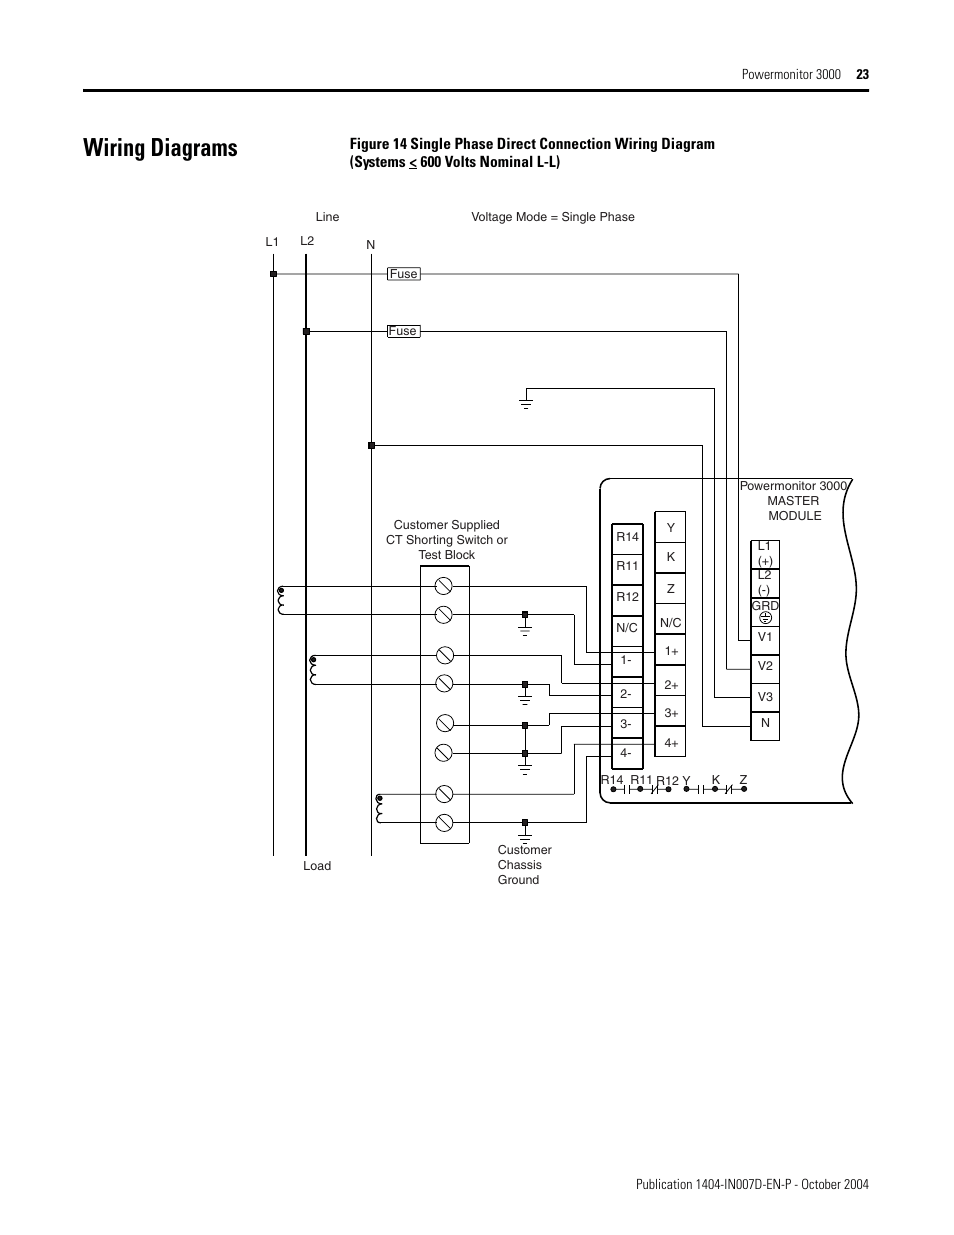 hight resolution of wiring diagrams rockwell automation 1404 m4 m5 m6 m8 powermonitor 3000 installation instructions prior to firmware rev 3 0 user manual page 23 66